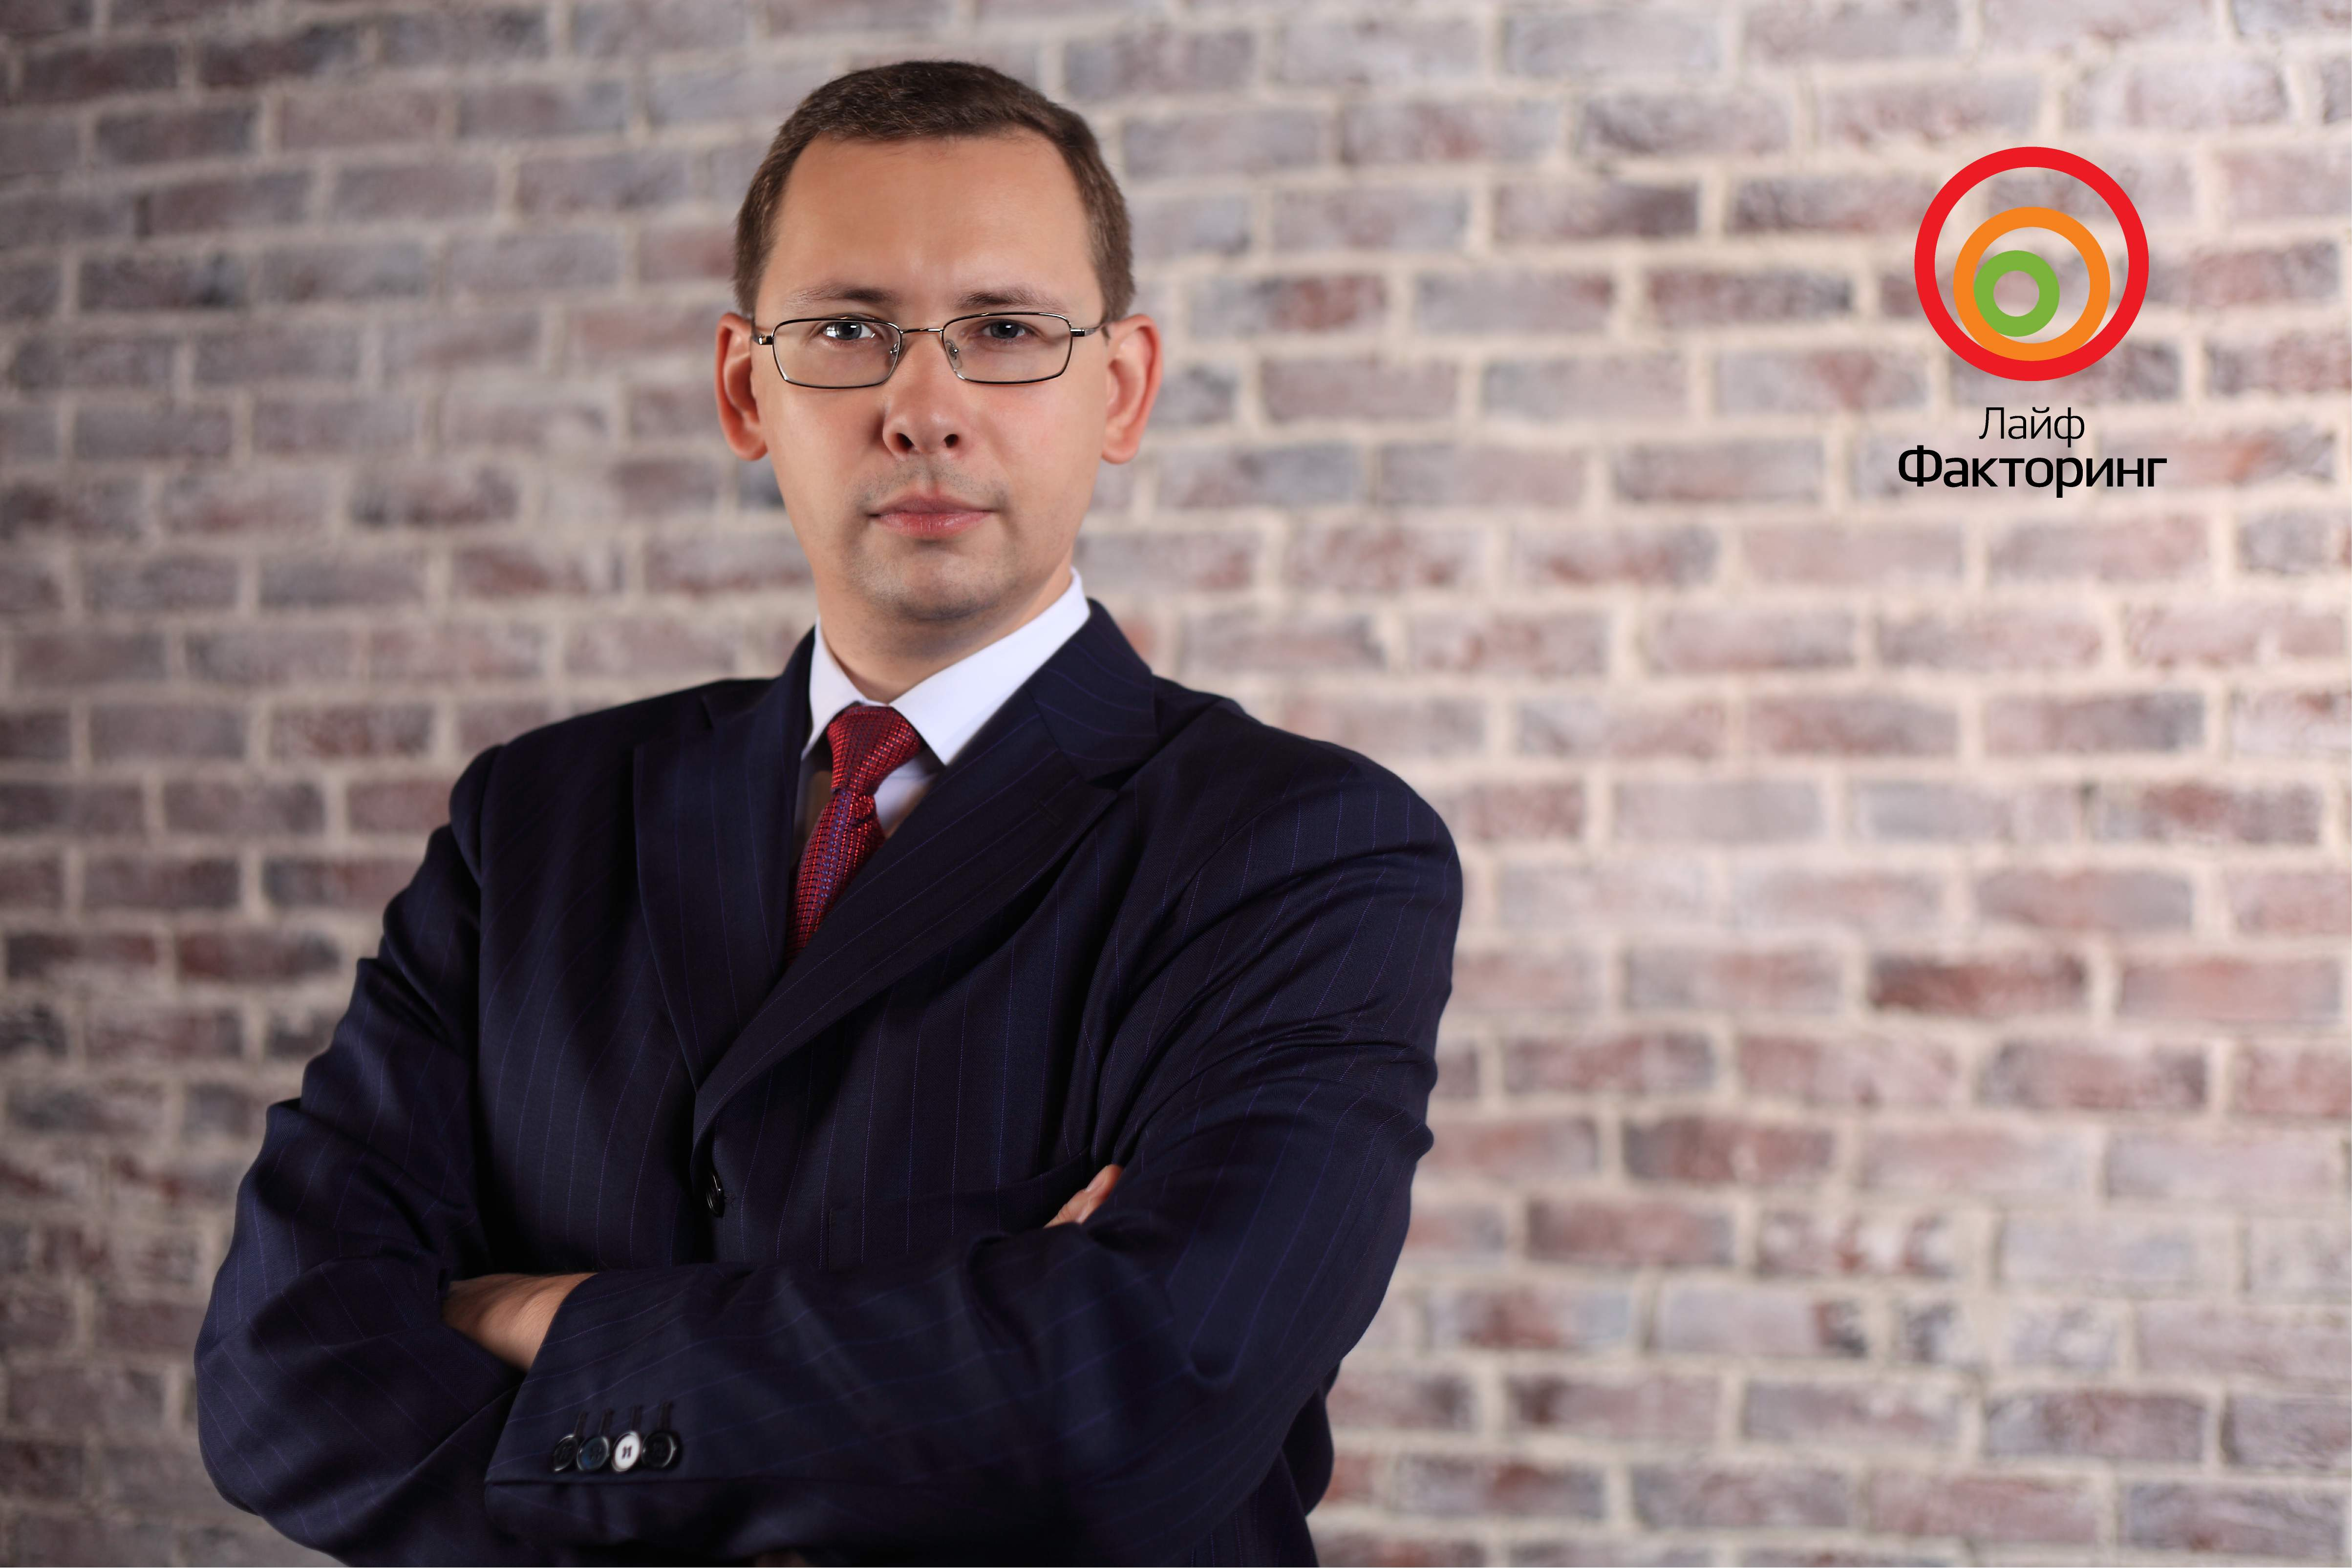 On April 17, the speaker of the Russia for kids forum, Viktor Vernov, General Director of Life Factoring, a partner, will talk about the specifics of working with companies from the children's goods industry.